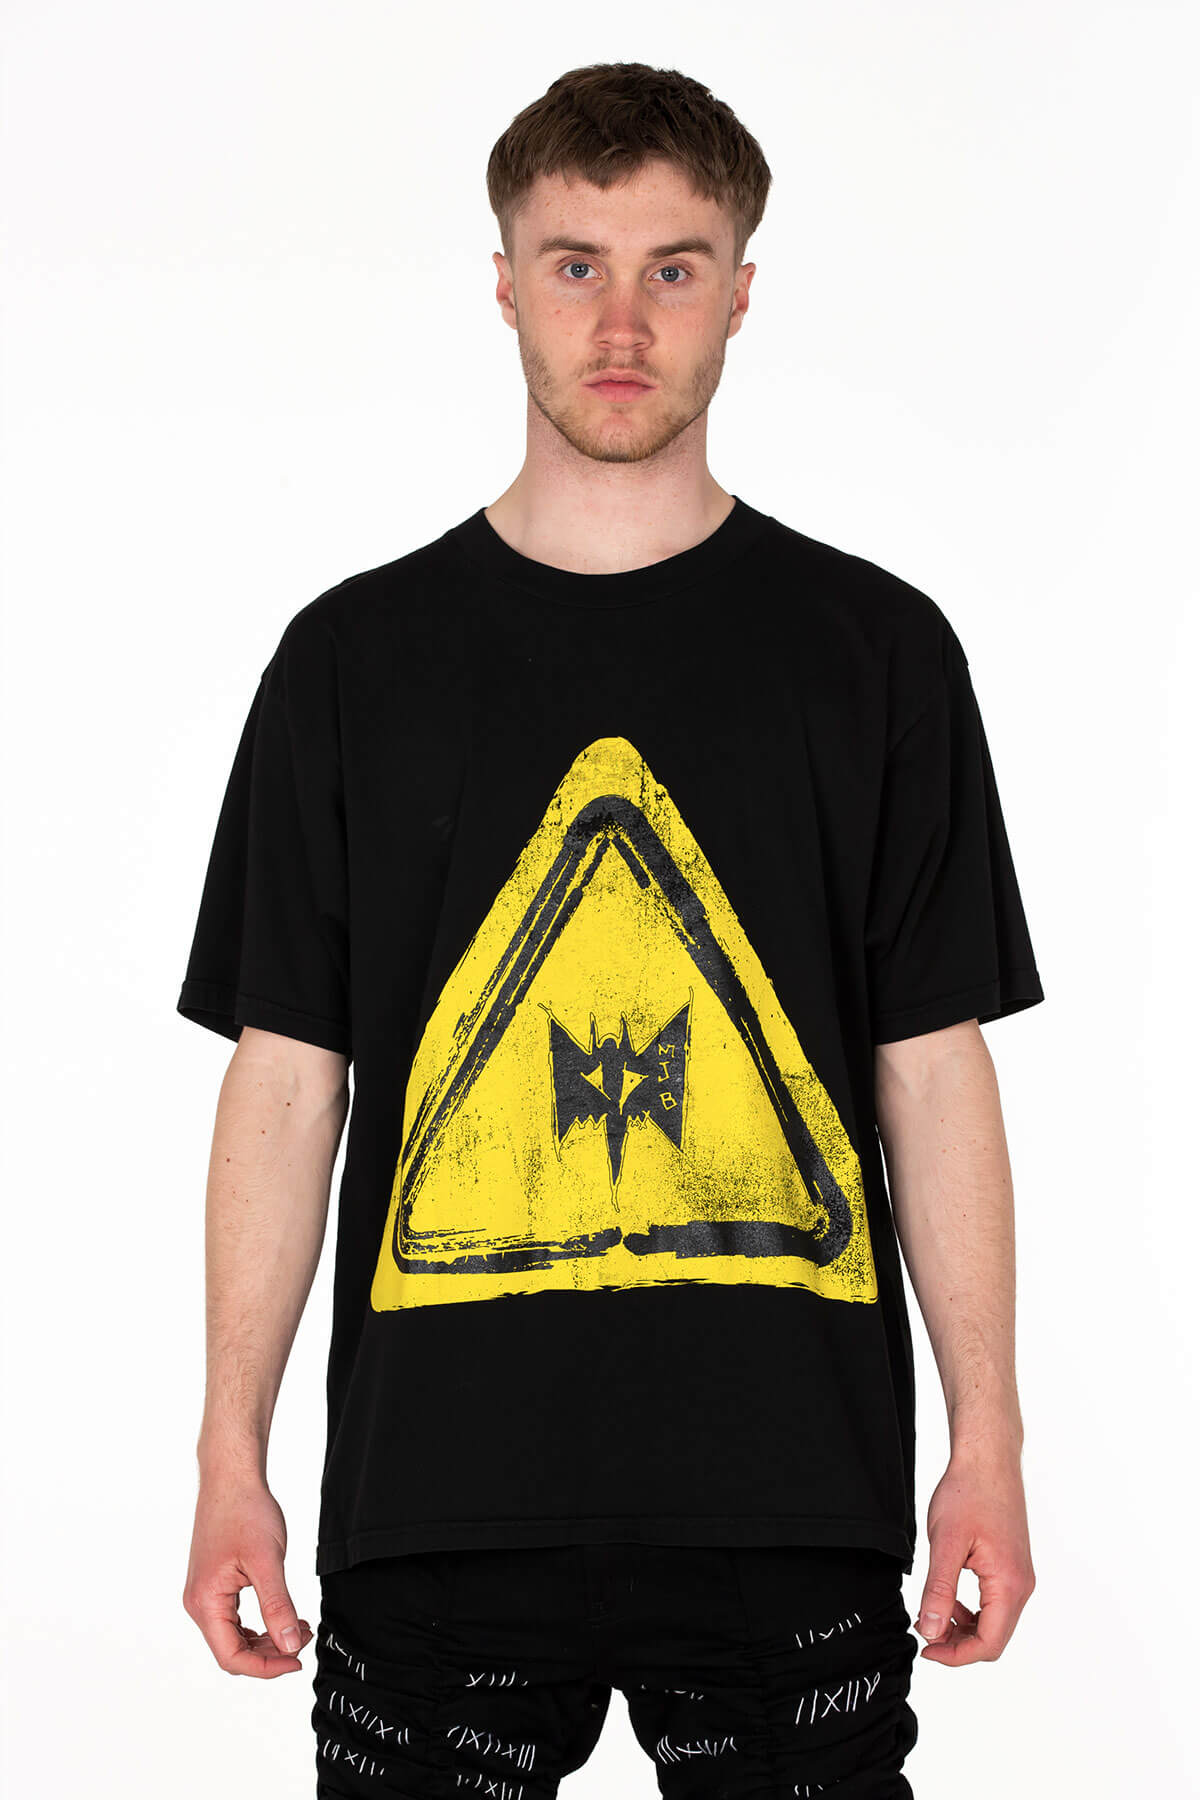 YELLOW WARNING SIGN FESTIVAL T-SHIRT - MJB